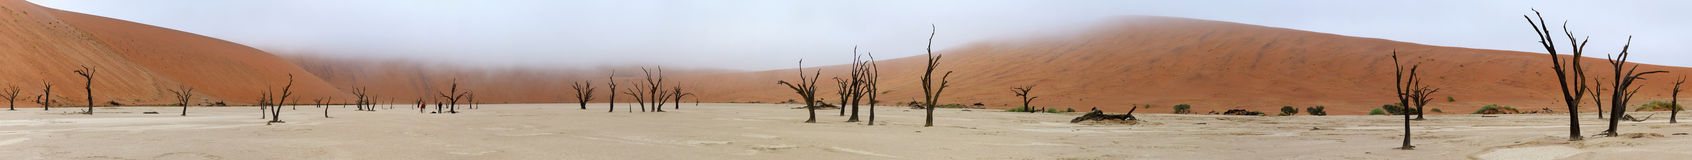 Deadvlei panorama Stock Image